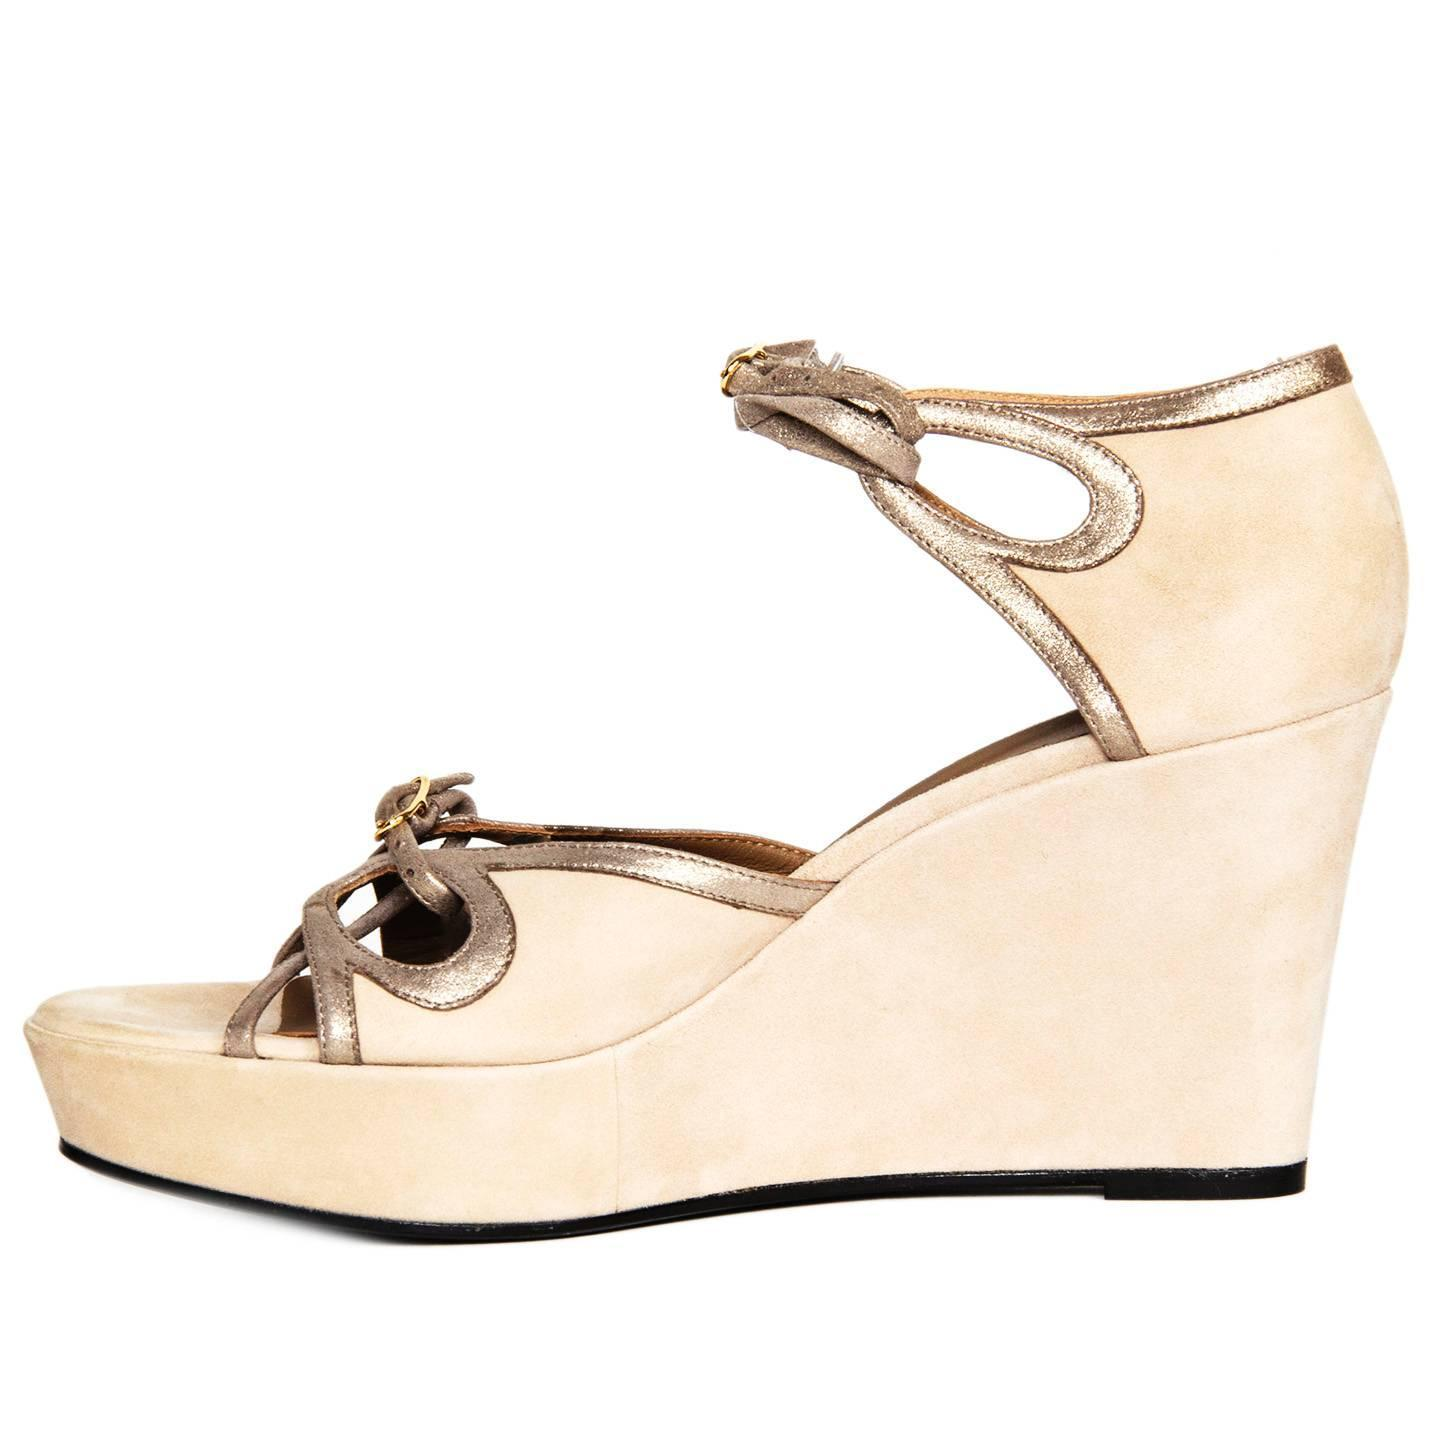 d2031c9efdb6 Hermès Taupe Suede Wedge Sandals For Sale at 1stdibs